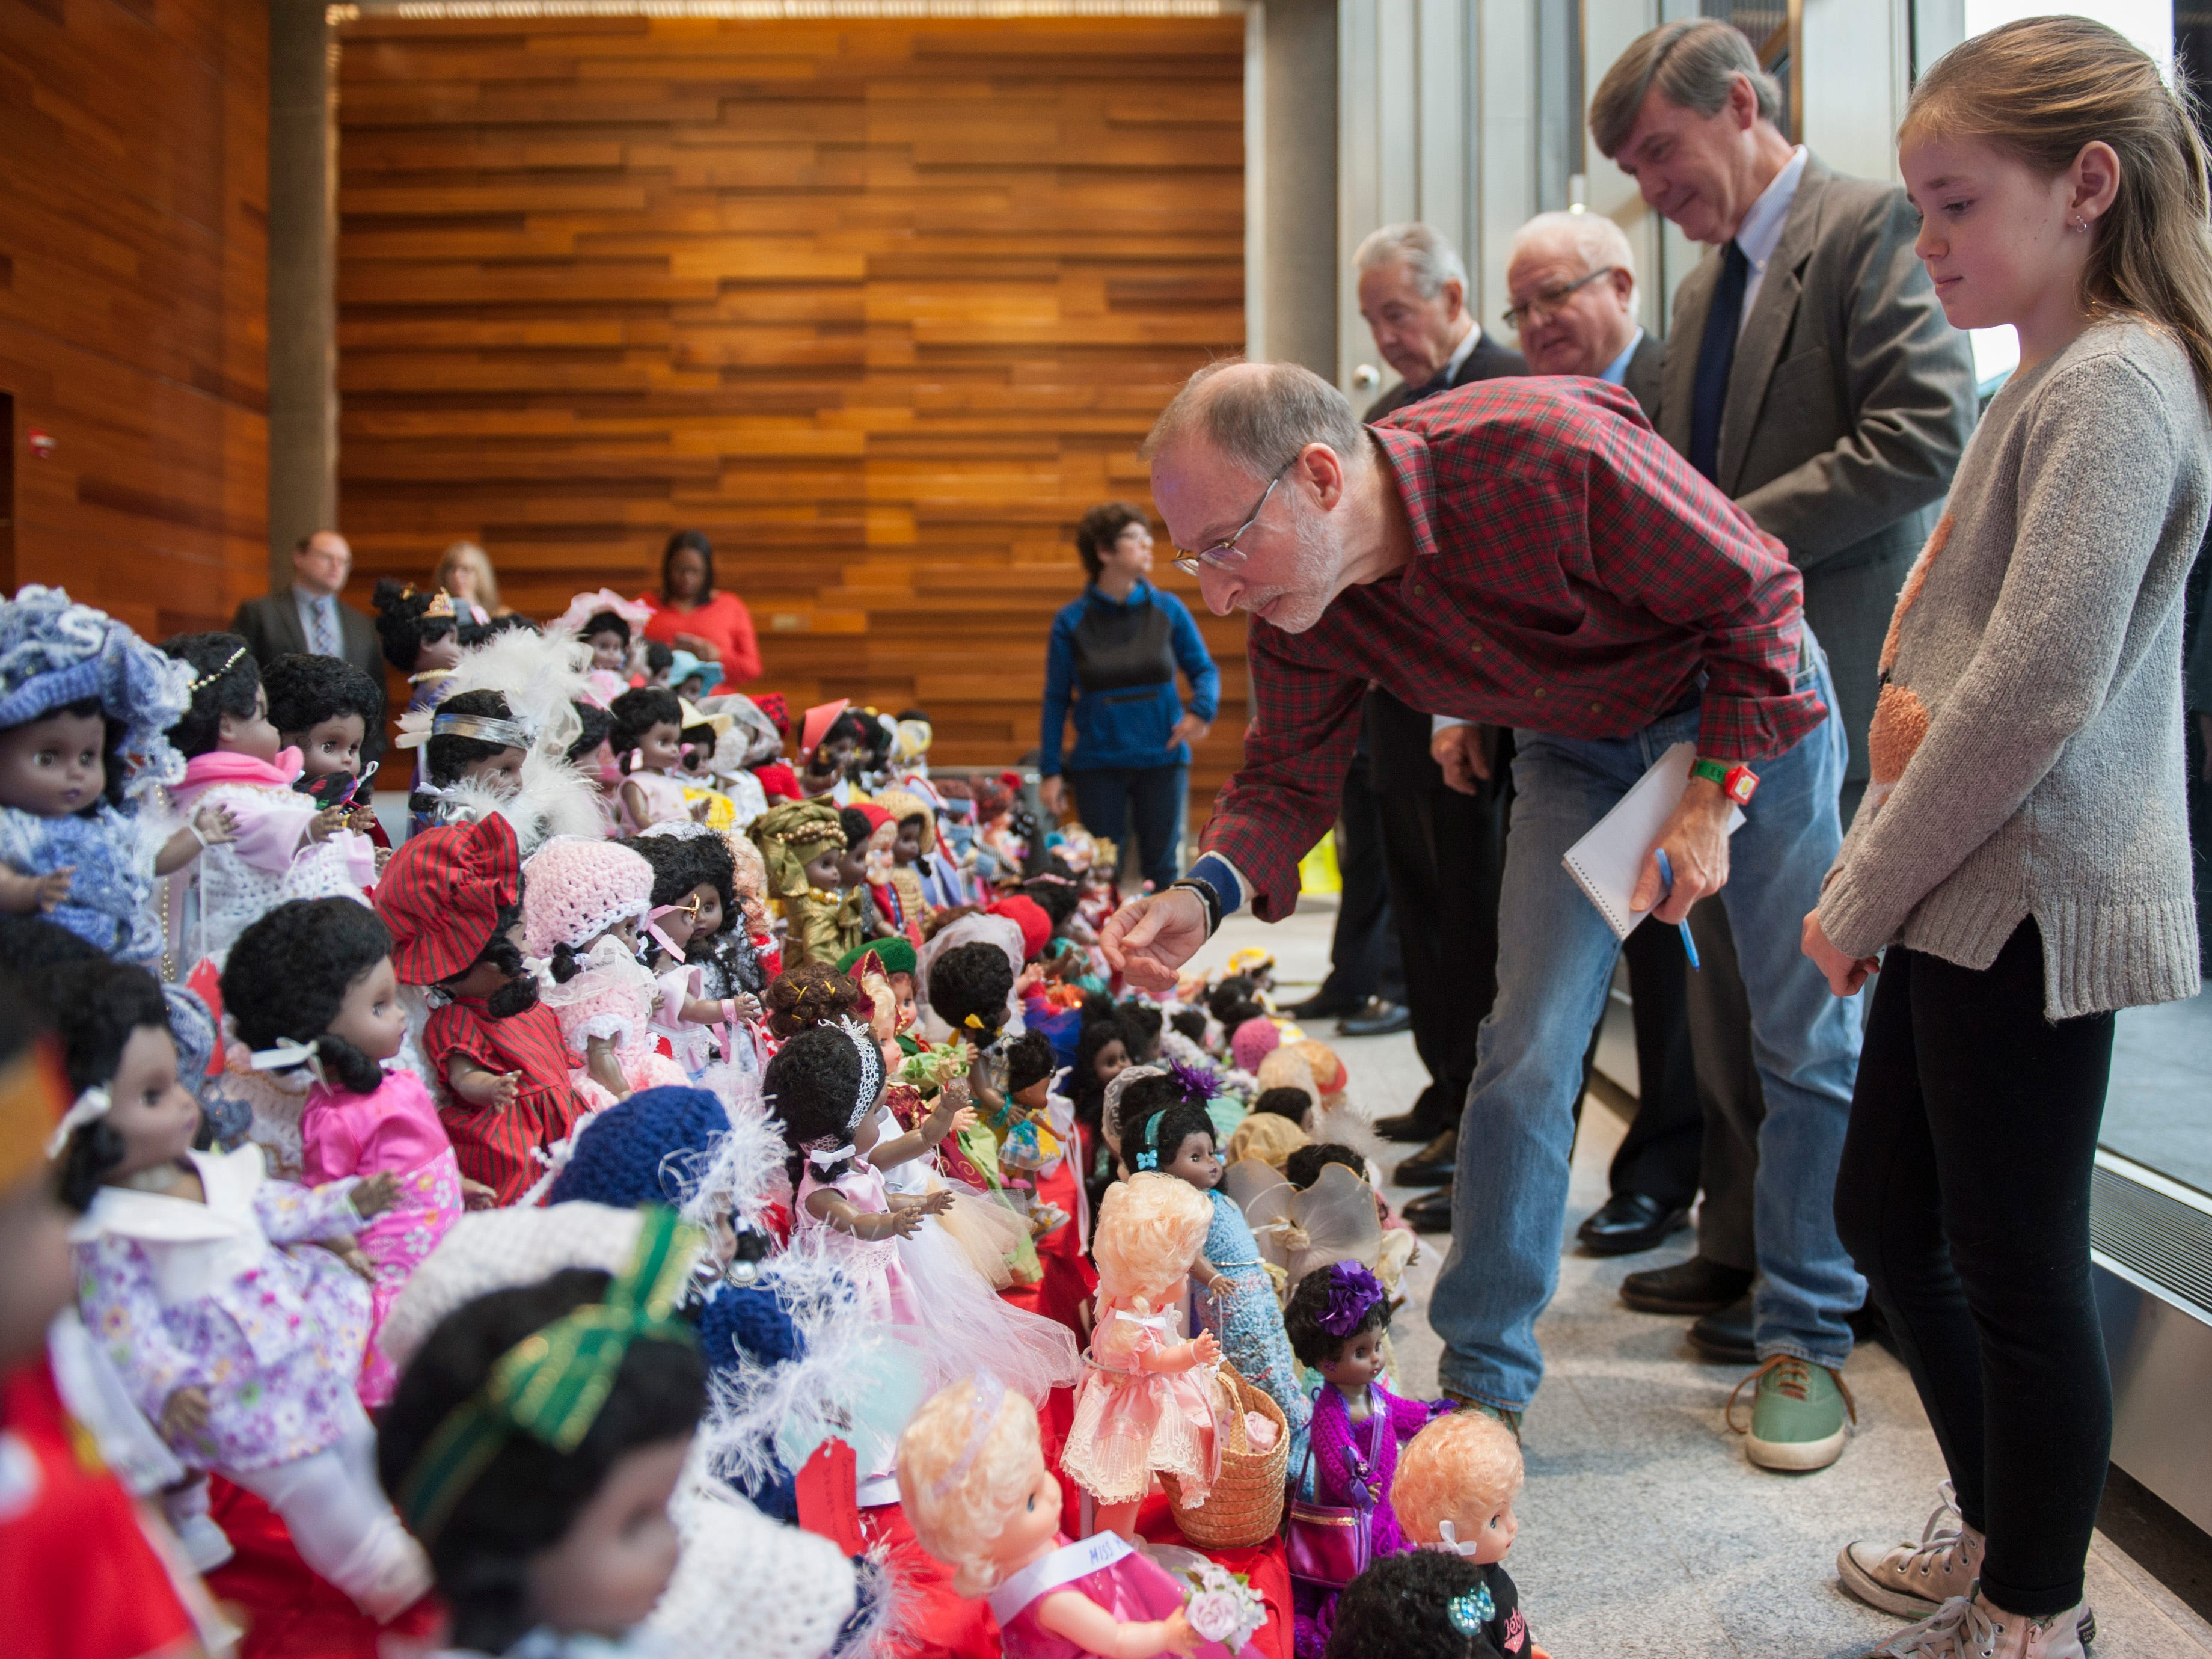 Neal Rubin of The Detroit News leans in for a closer look at the dolls as he and fellow judge Emily Stanczak, 9, of Auburn Hills consider their choices from an array of fancifully dressed dolls.